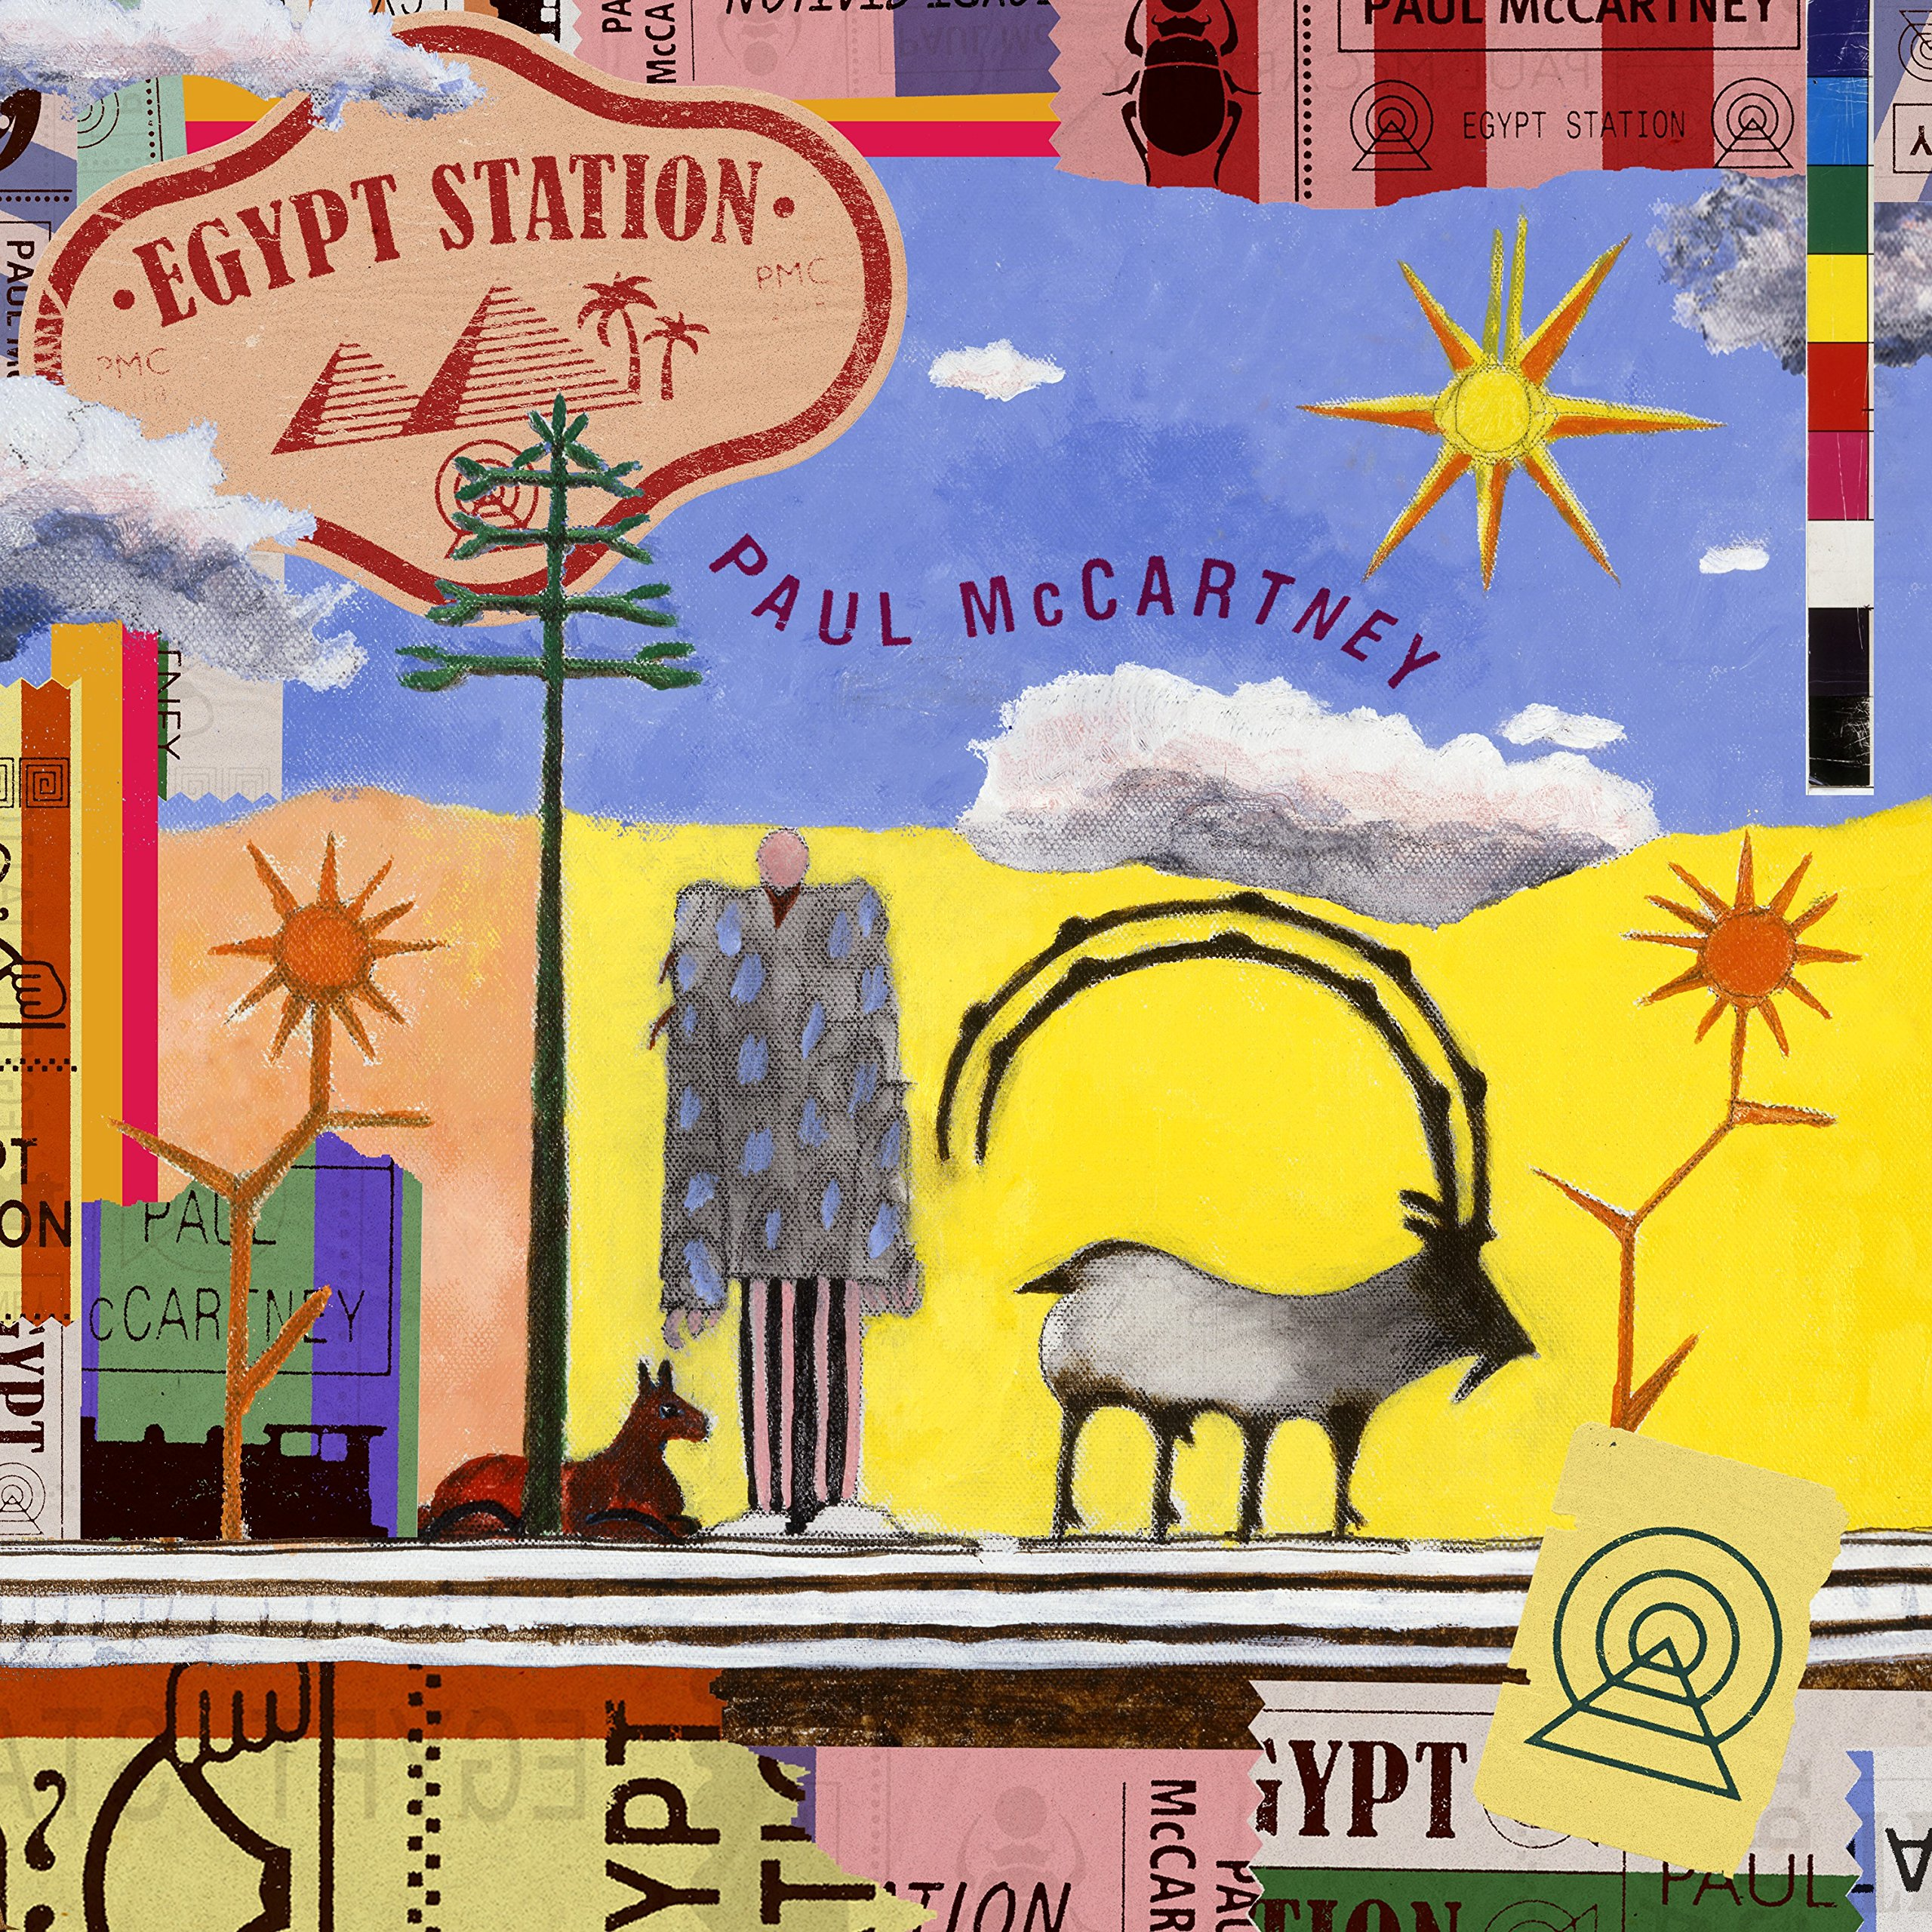 Vinilo : Paul McCartney - Egypt Station (Gatefold LP Jacket, Limited Edition, Deluxe Edition, 2PC)